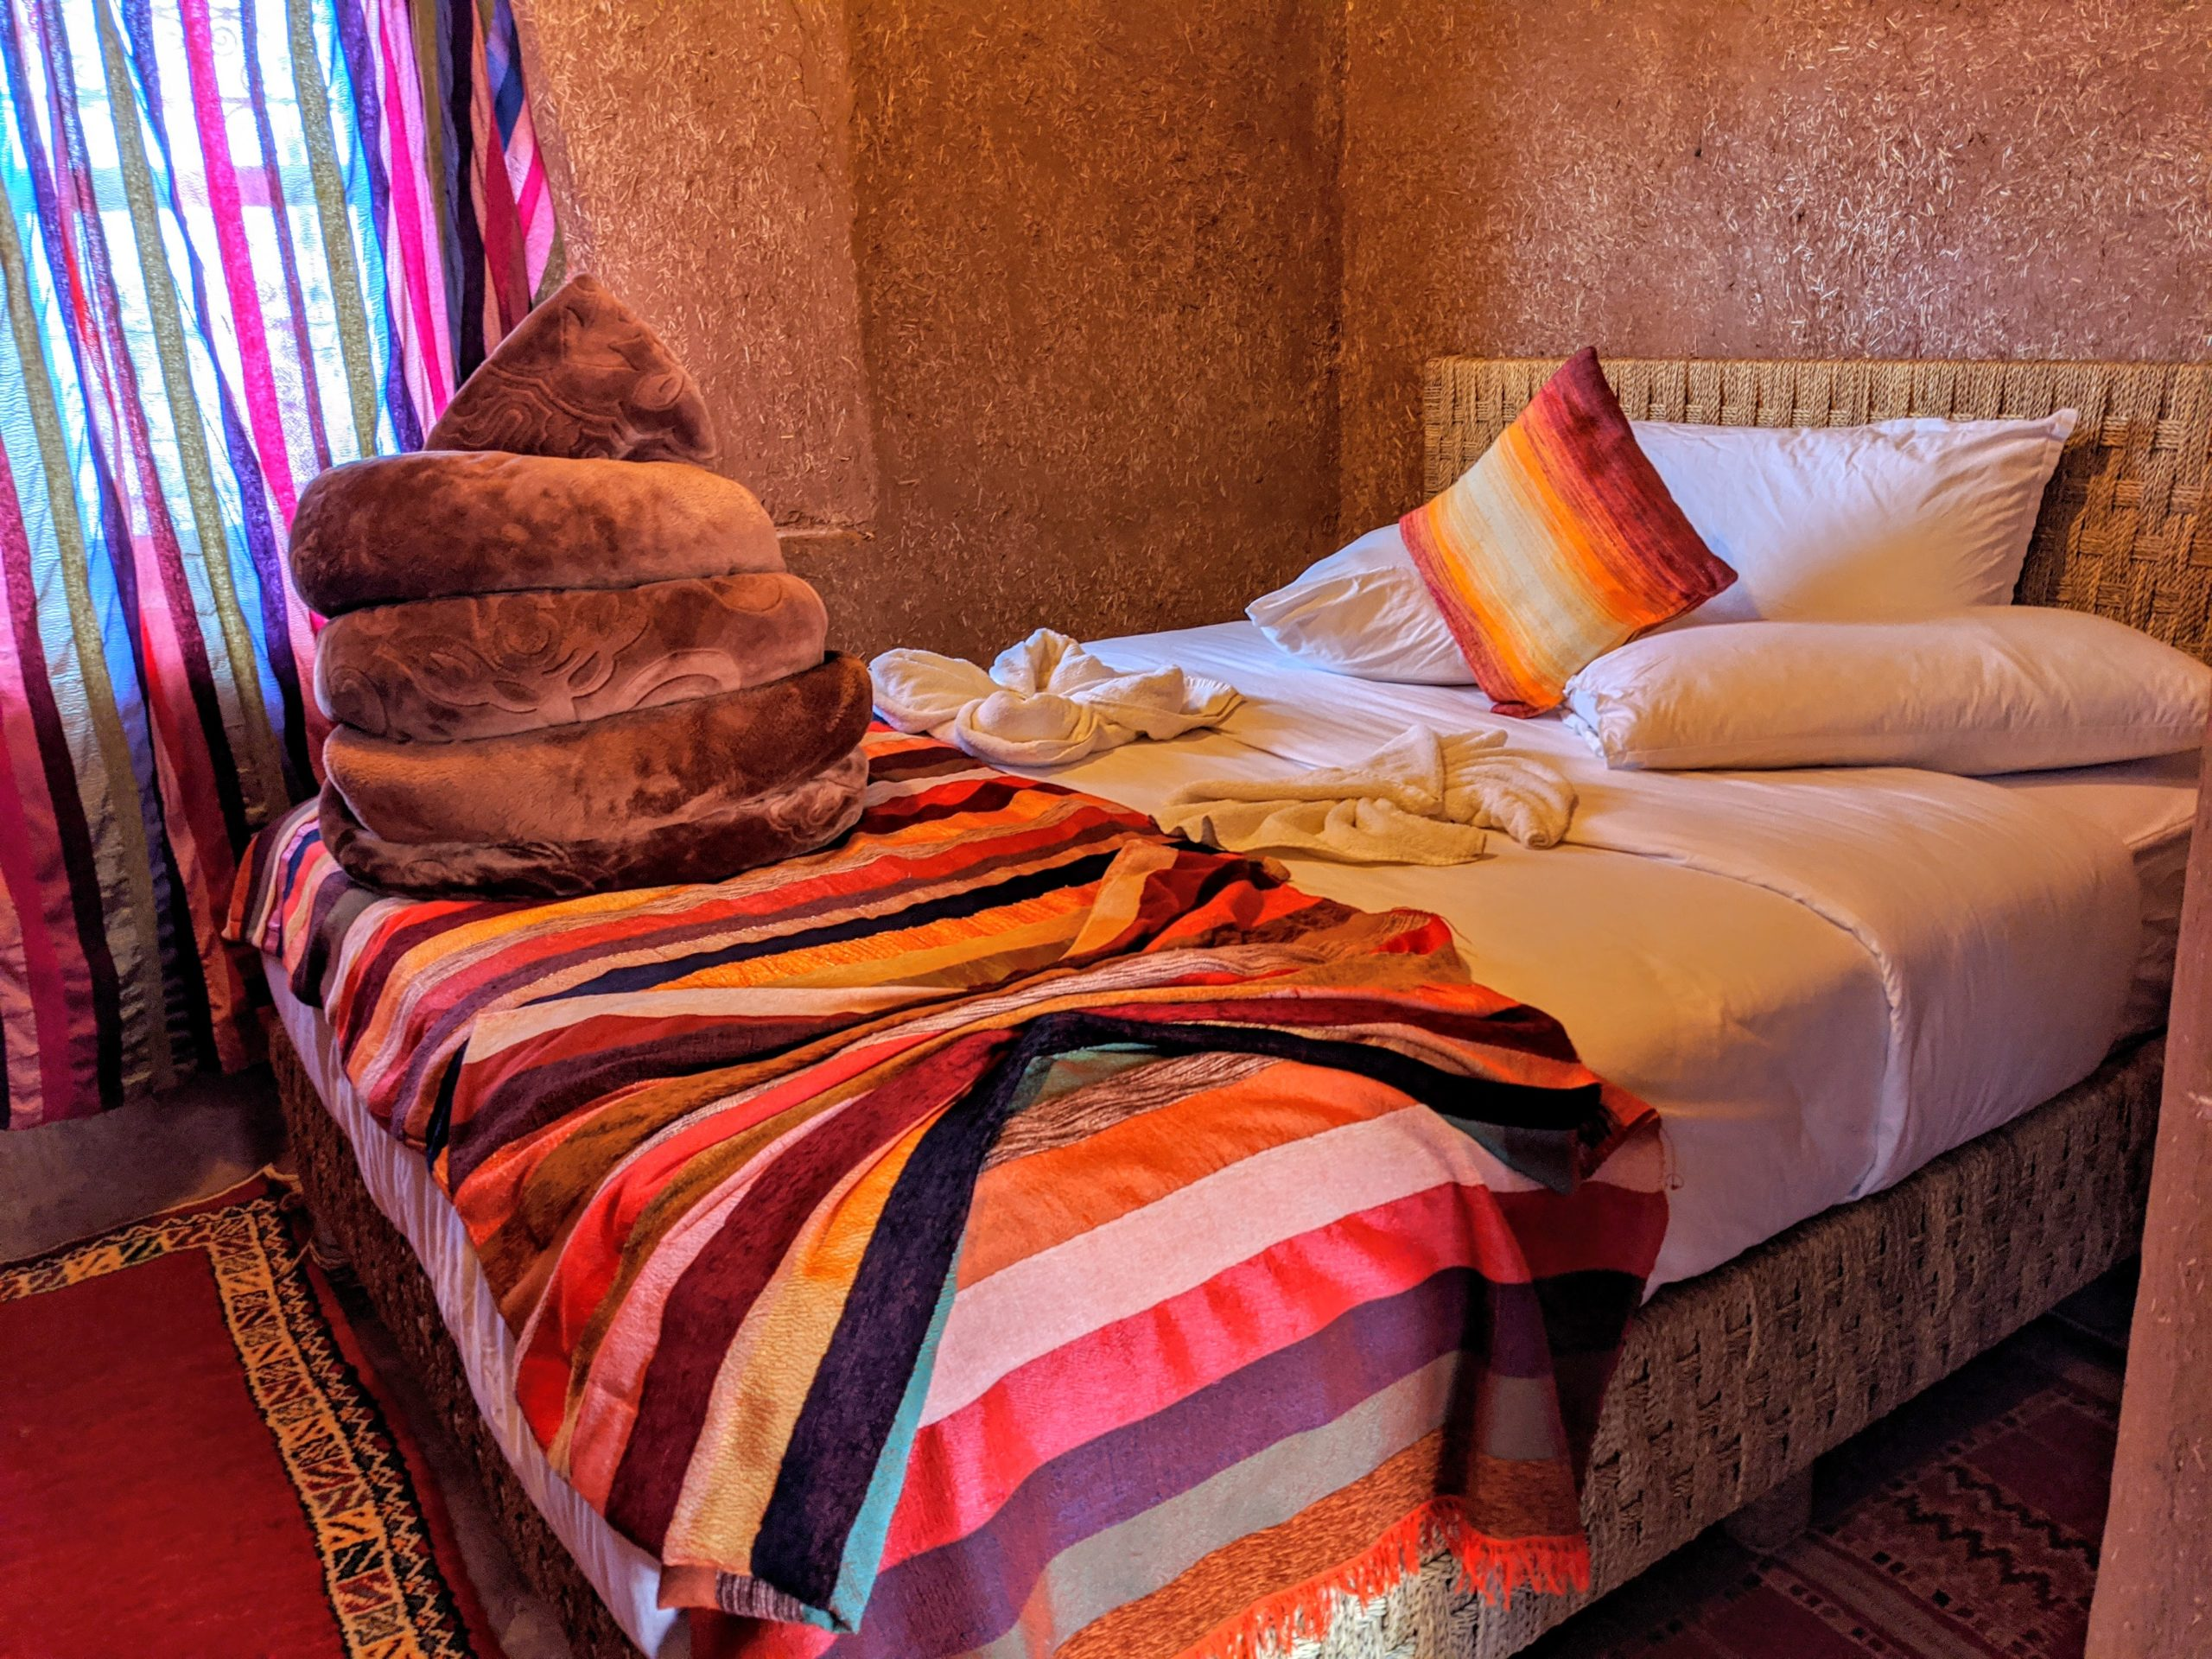 Hotel room in Morocco